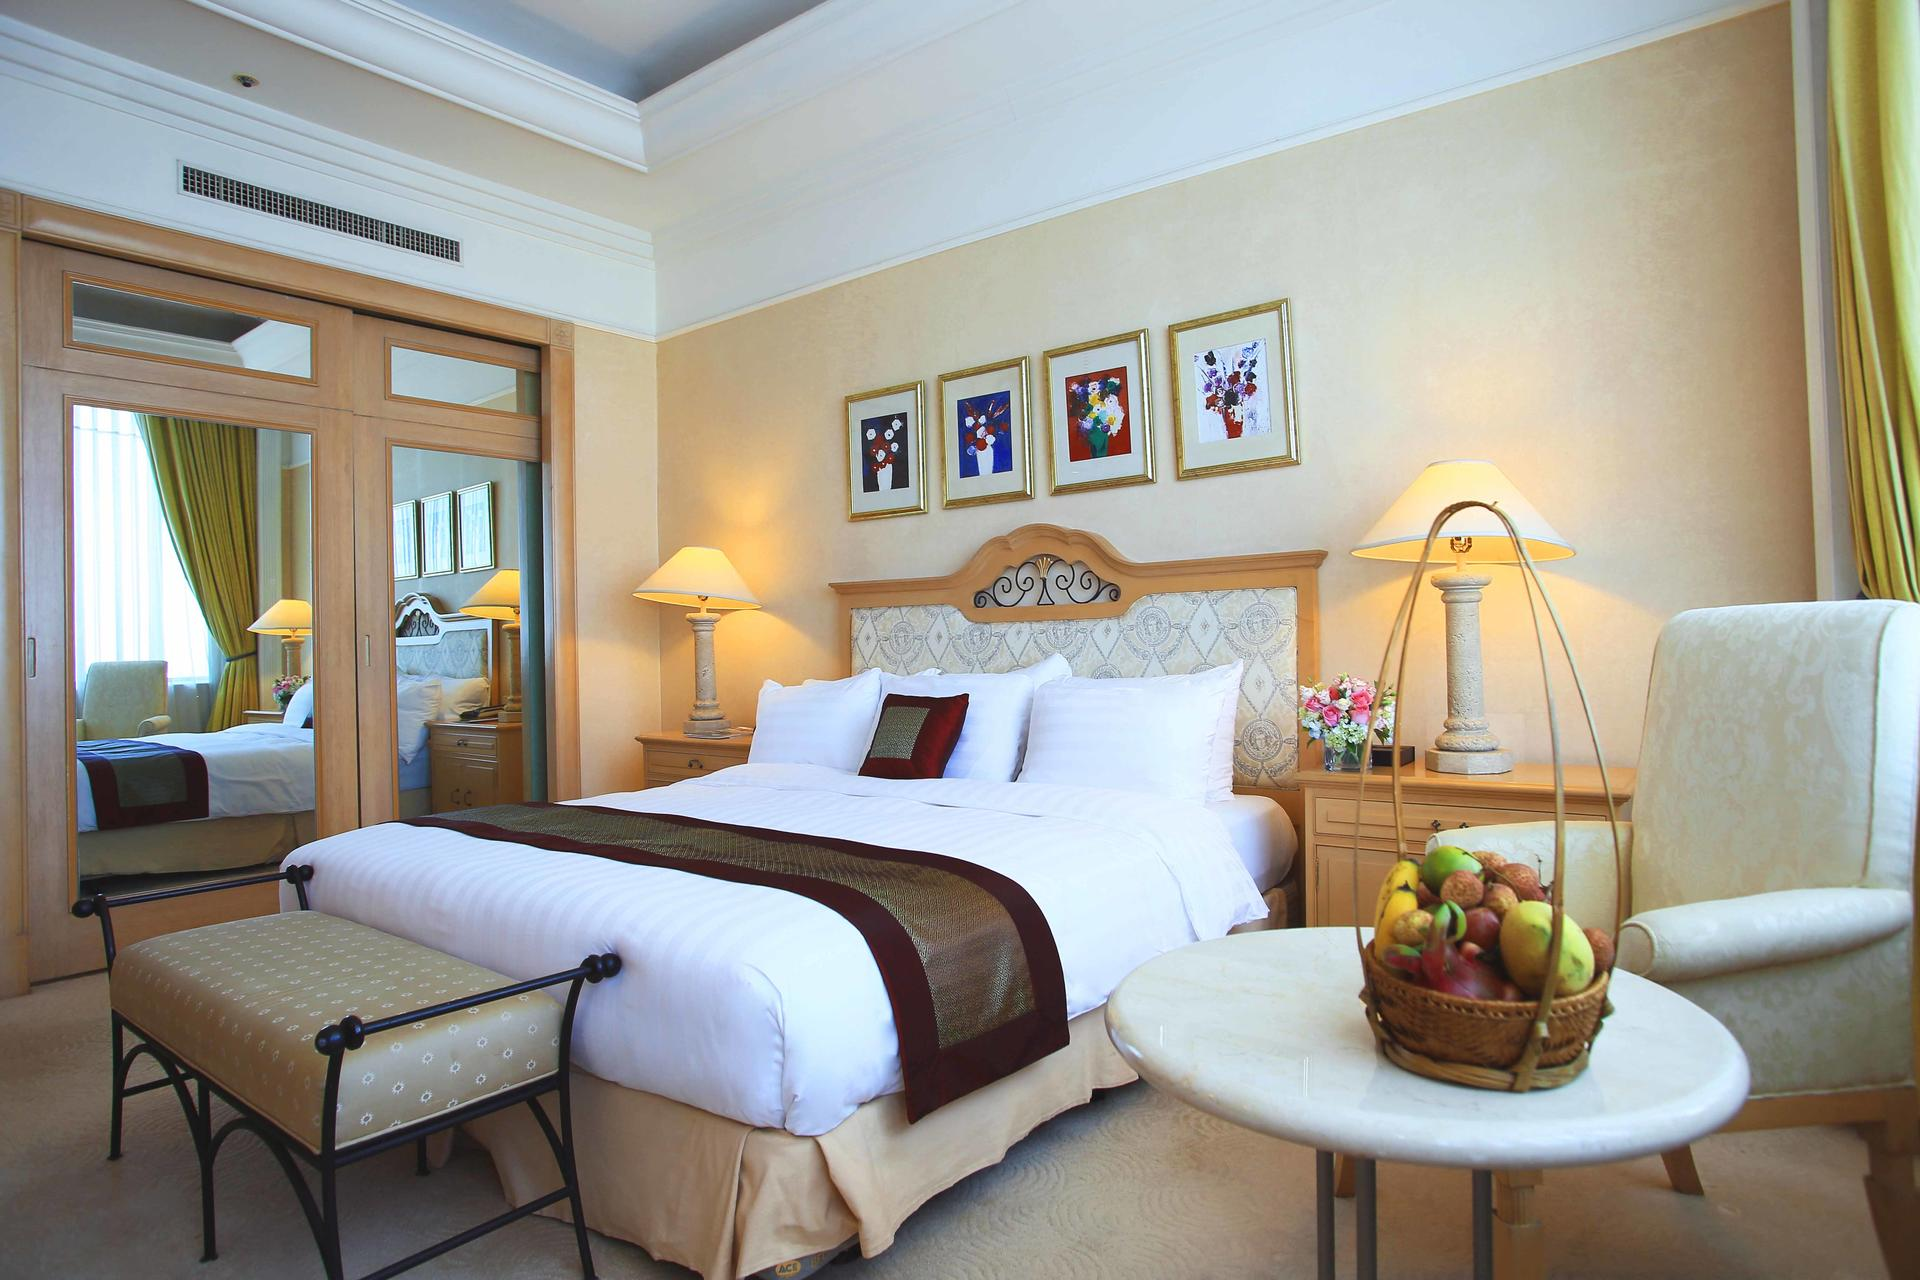 Luxury Hanoi Accommodation with Exceptional Services